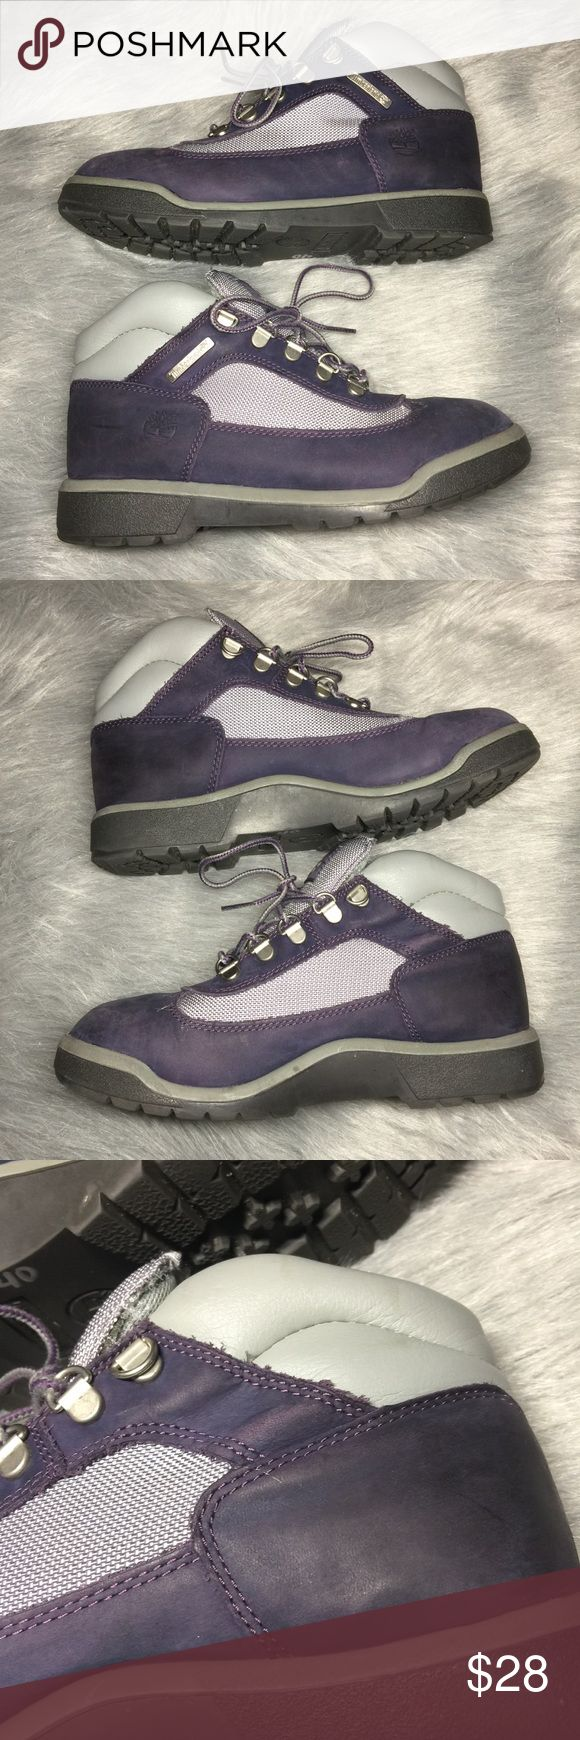 Girls Purple Timberland Boots Size 5.5 🌲Girl's Purple Timberland boots. size US 5.5. like new condition with minor scuffing. Condition shown in photos. Message me for more info. Timberland Shoes Boots